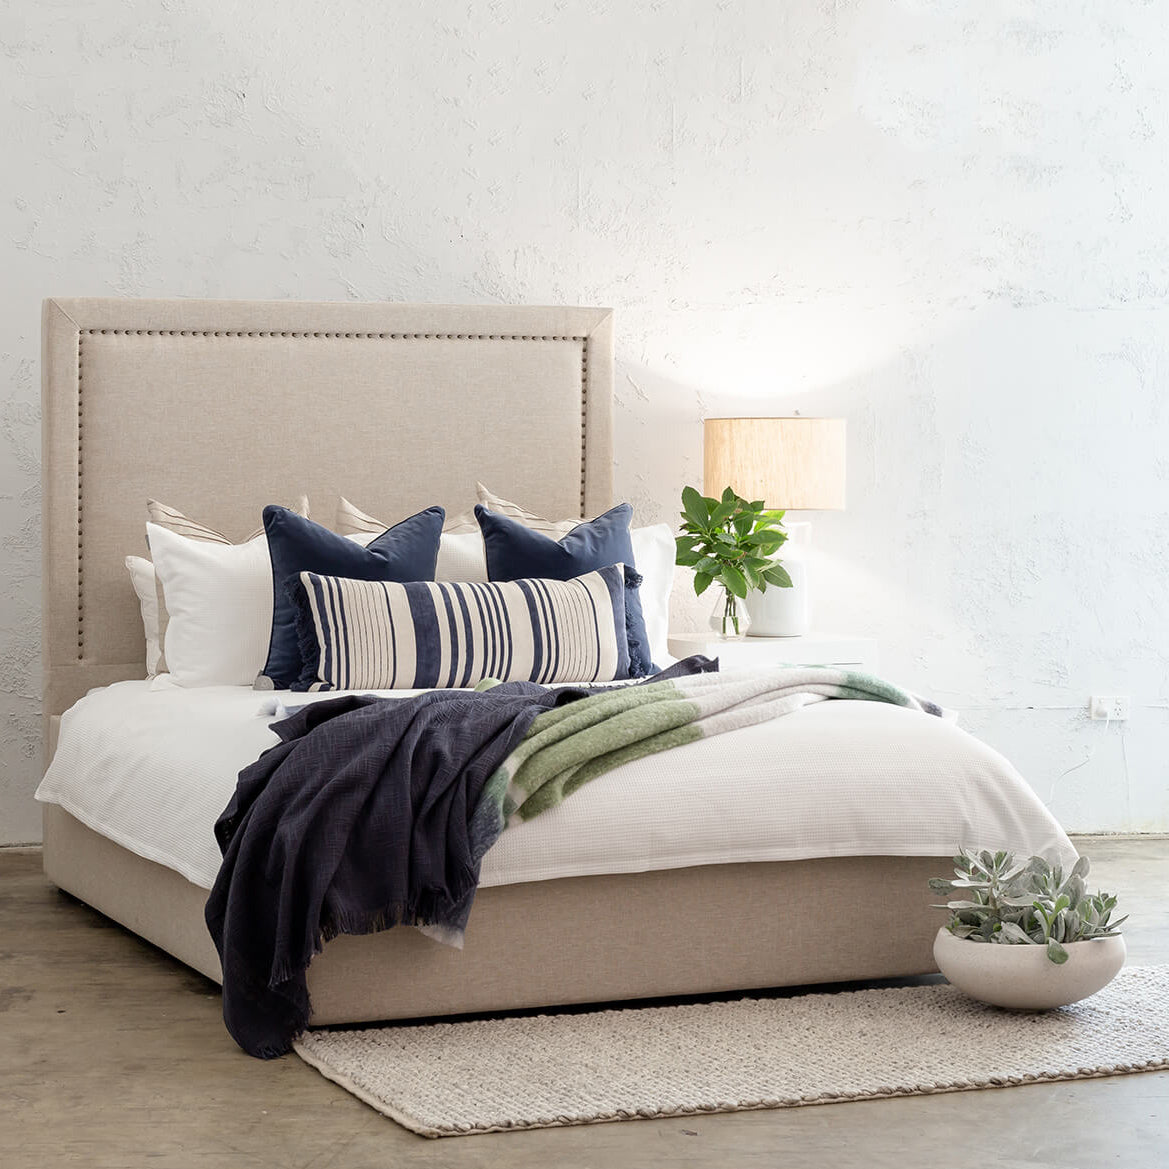 MARLE BED WITH STUDDED SQUARE FRAME   |  NATURAL LINEN  |  KING SIZE BED